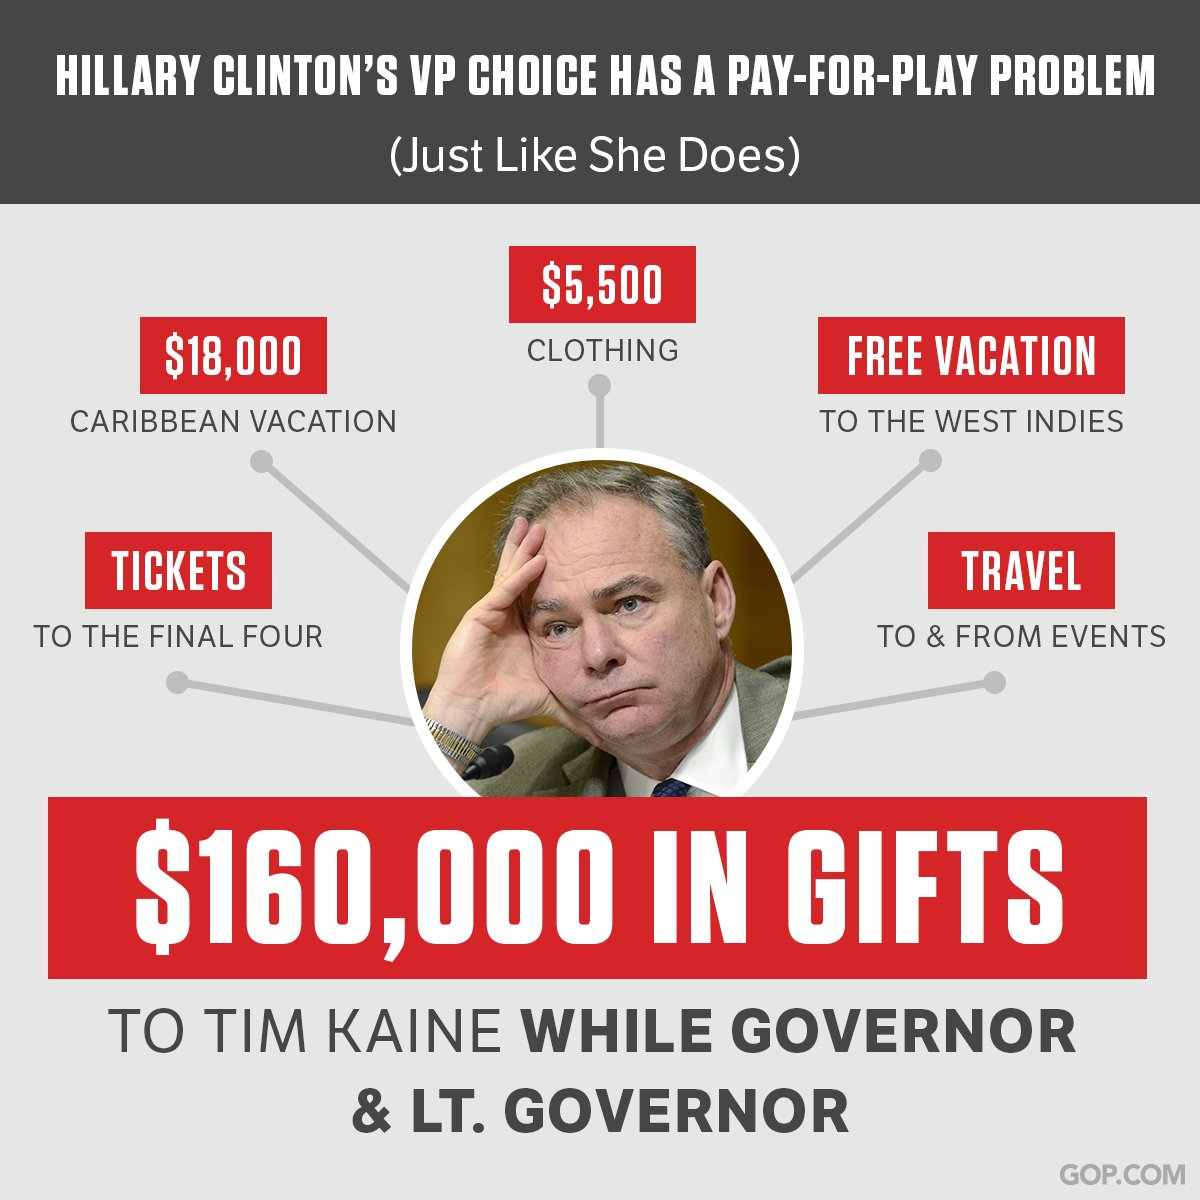 Hillary Clinton & Tim Kaine have a few things in common... https://t.co/7ToHB9BBFQ